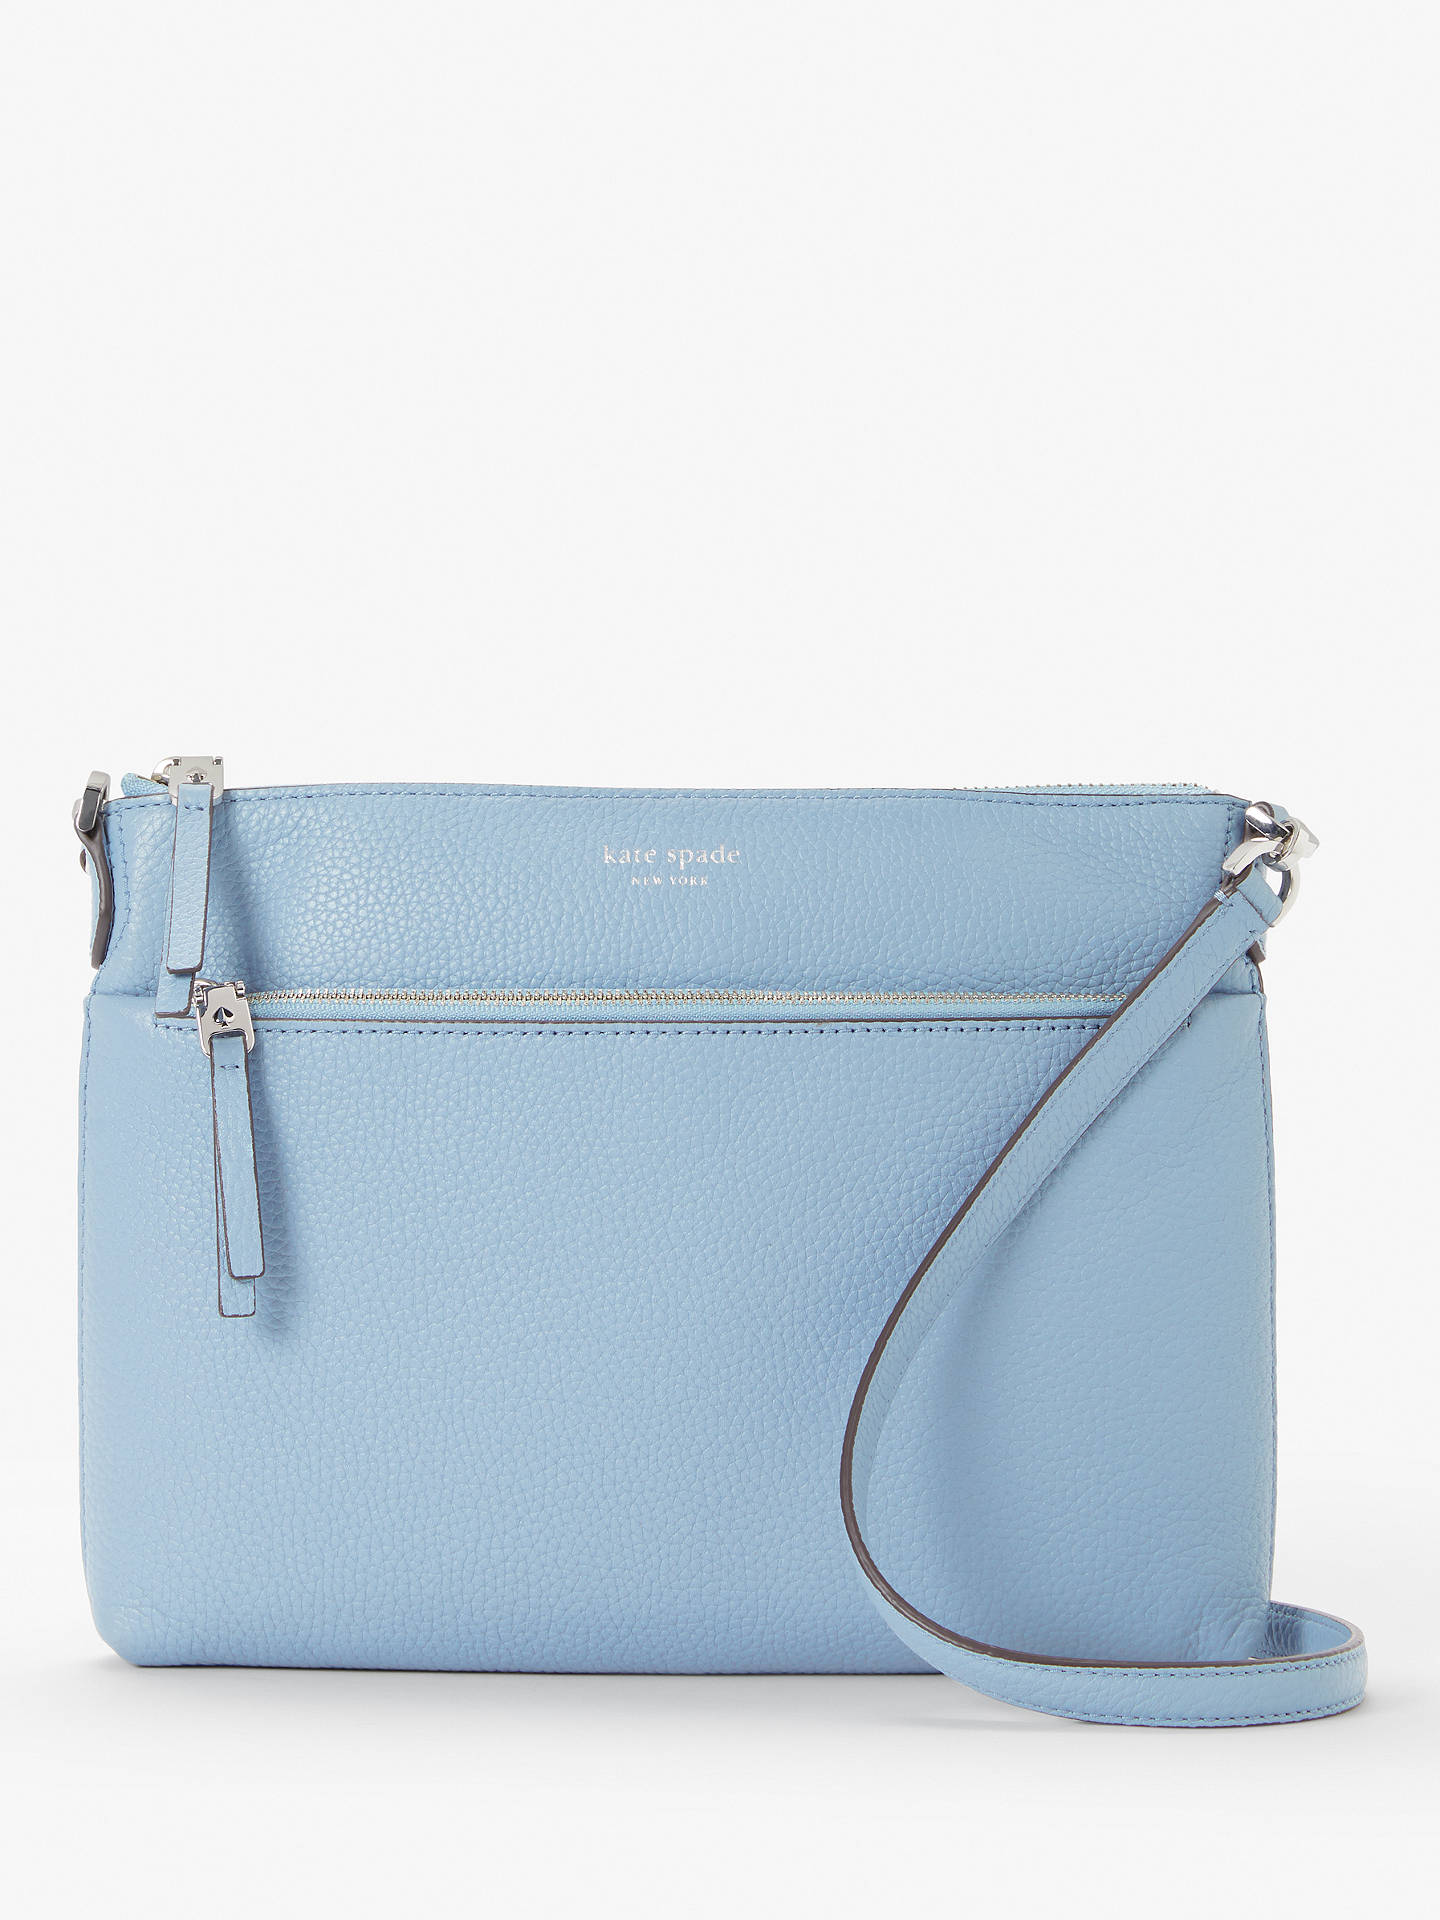 8e041d63b584 kate spade new york Polly Leather Medium Cross Body Bag at John ...